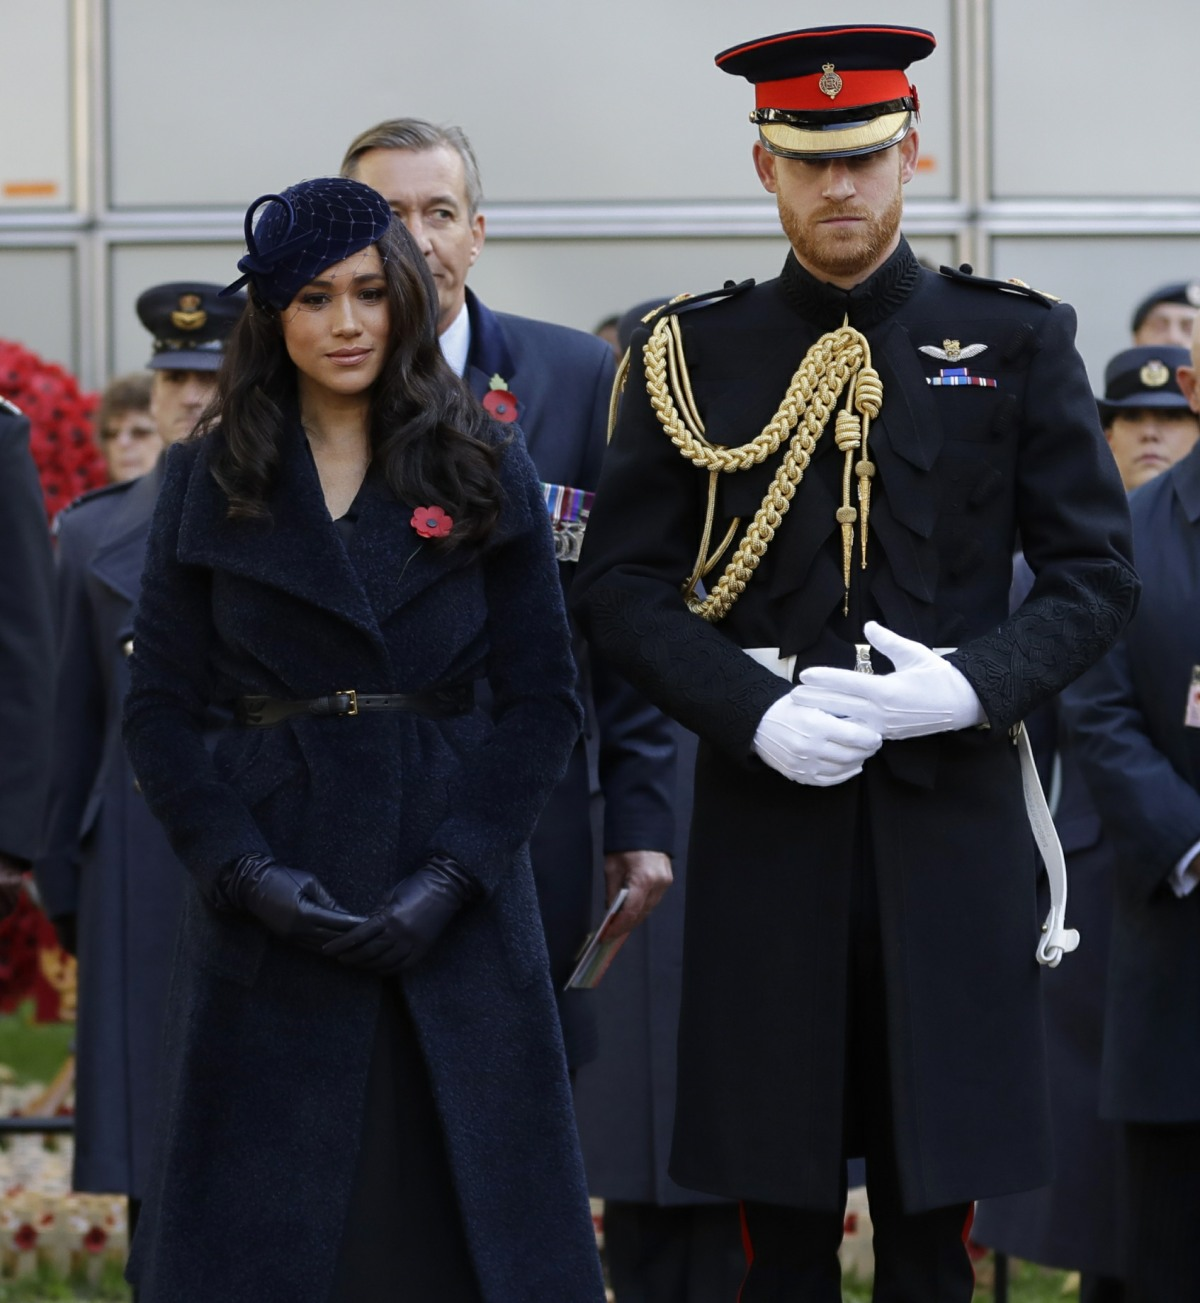 Britain's Prince Harry and Meghan, the Duchess of Sussex attend the 91st Field of Remembrance at Westminster Abbey in London, Thursday, Nov. 7, 2019.